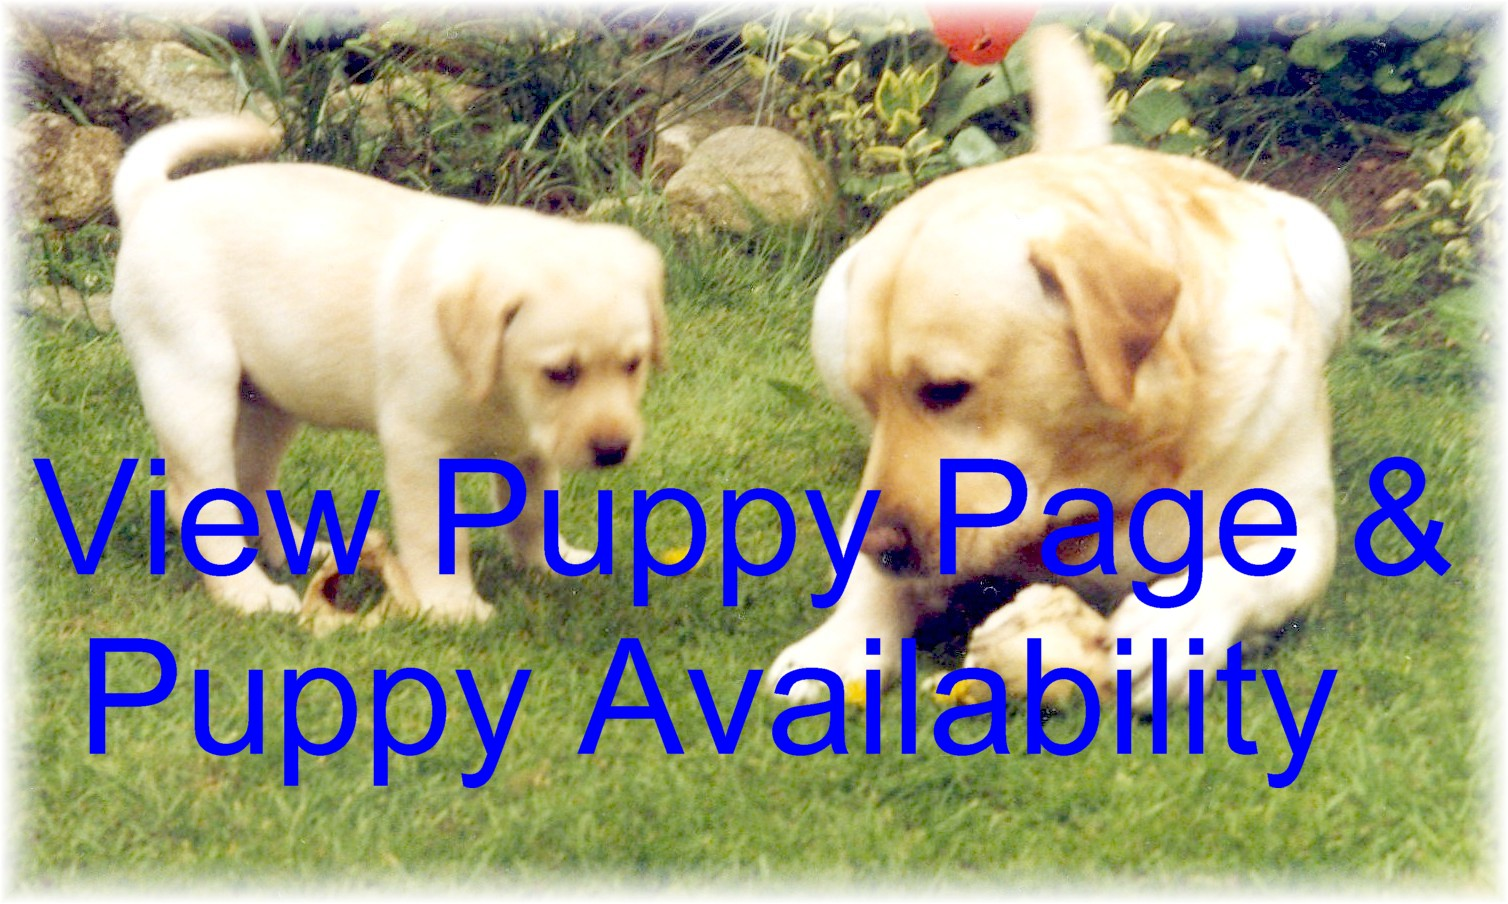 View Puppy Page and availability of Labrador Puppies for sale